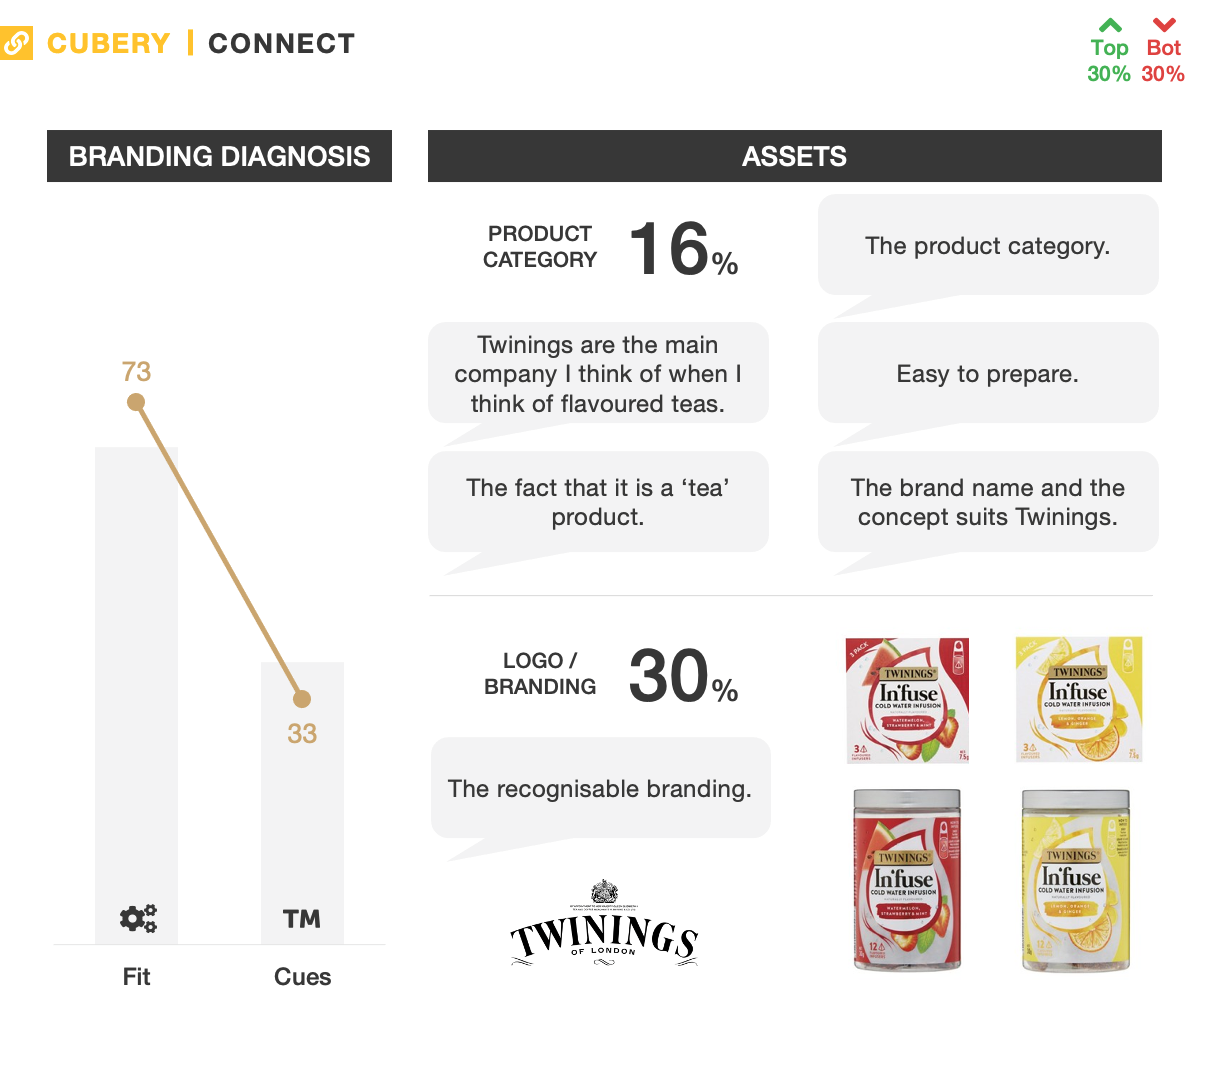 Twinings In'fuse Tea - Innovation Testing - Connect